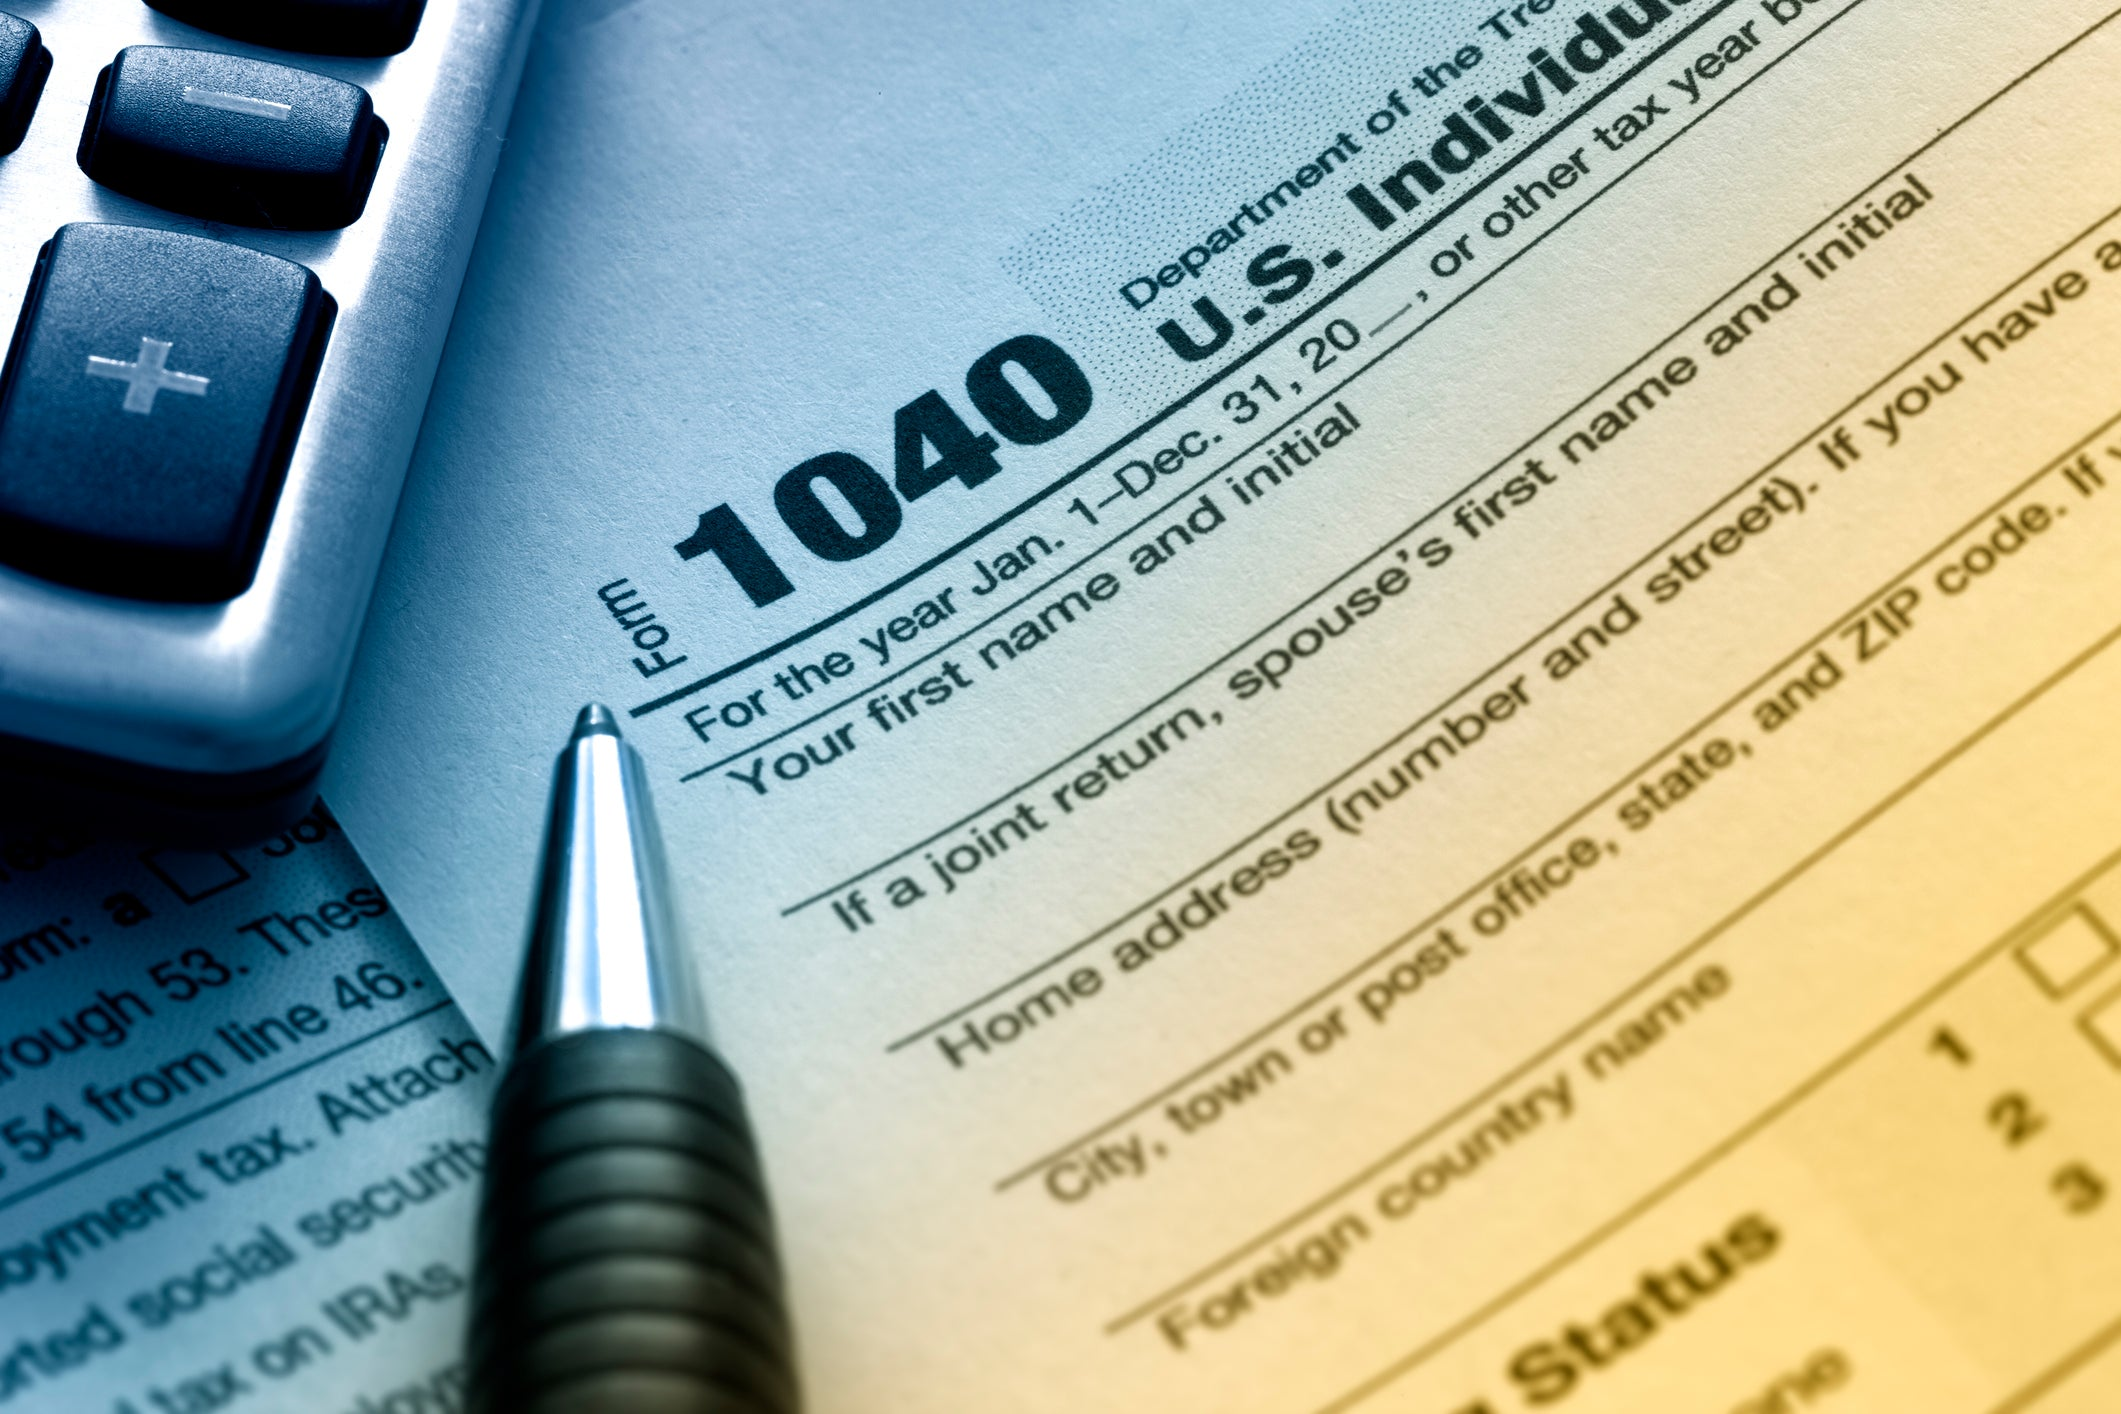 130 Million Americans Can Get Their Taxes Done for Free in 2020 -- Here's How | The Motley Fool